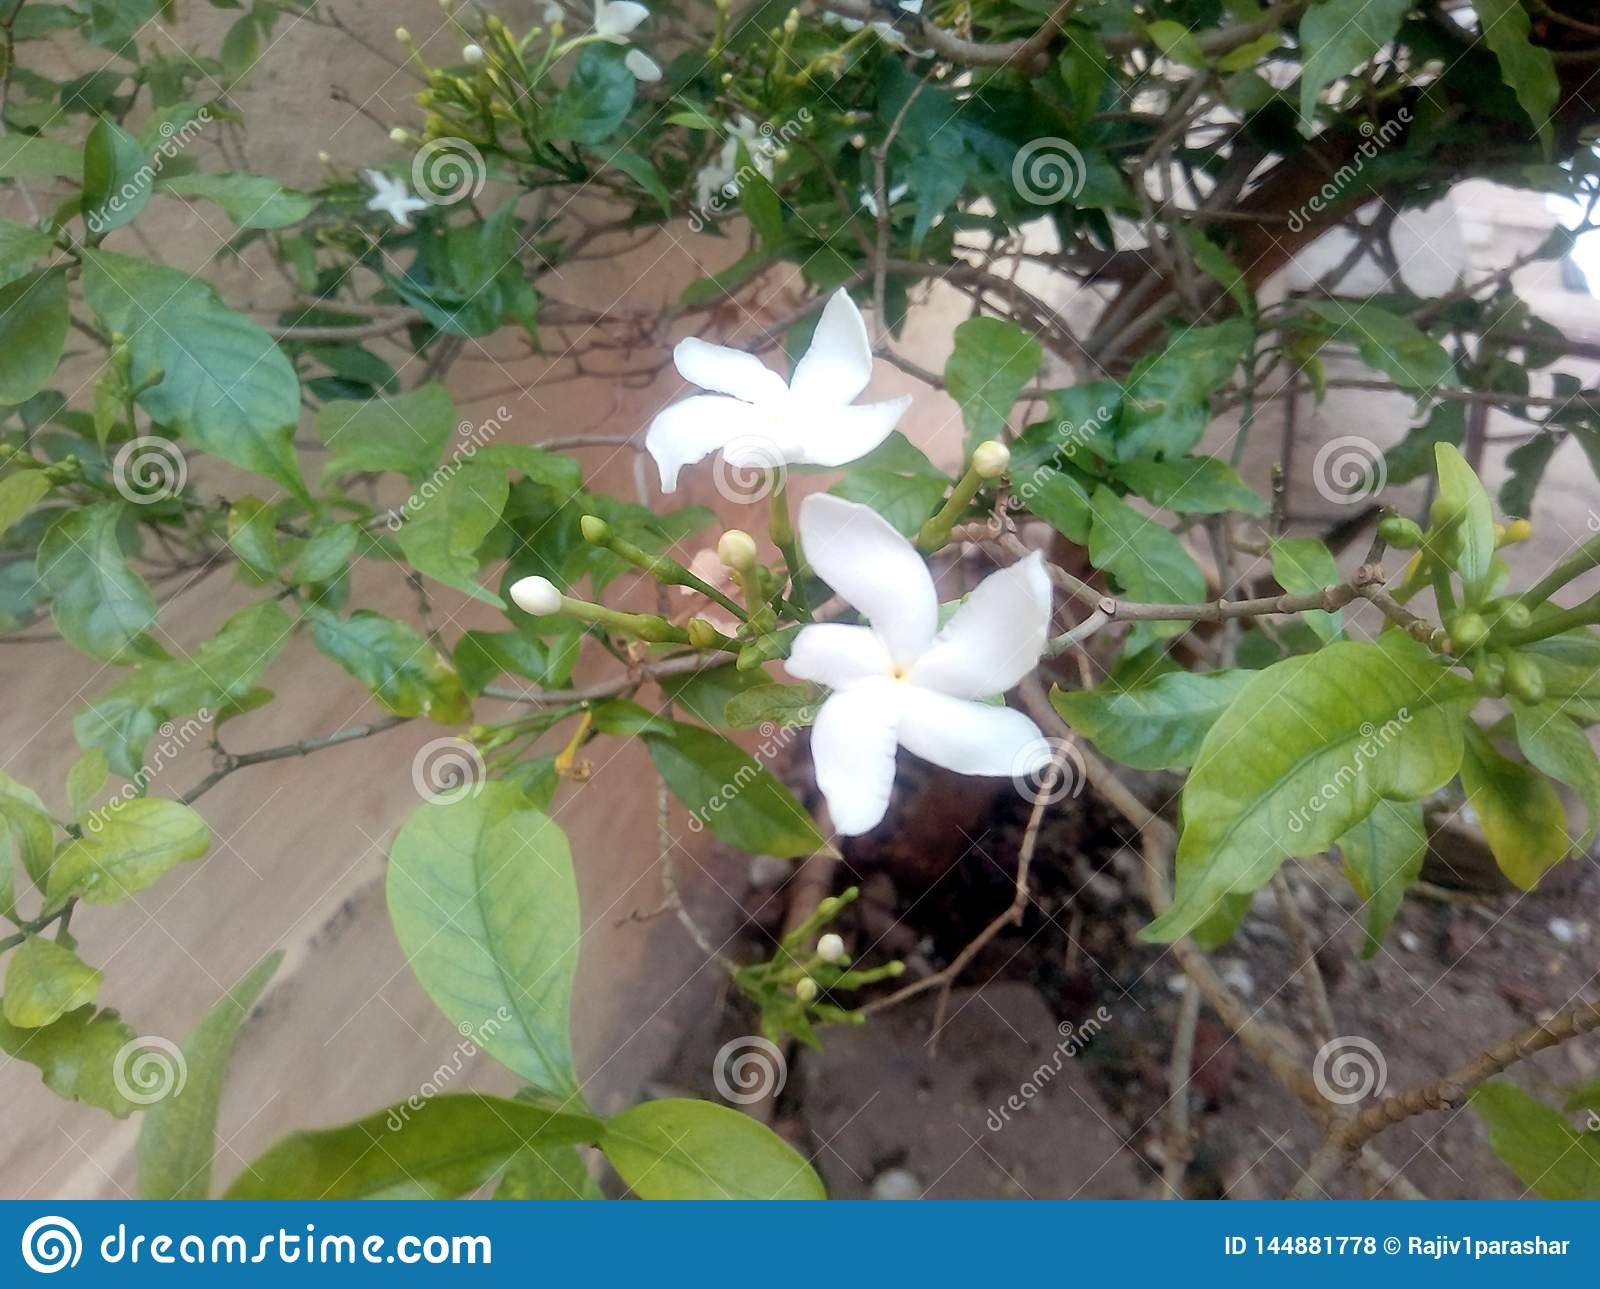 This is the image of white flower with green leafs